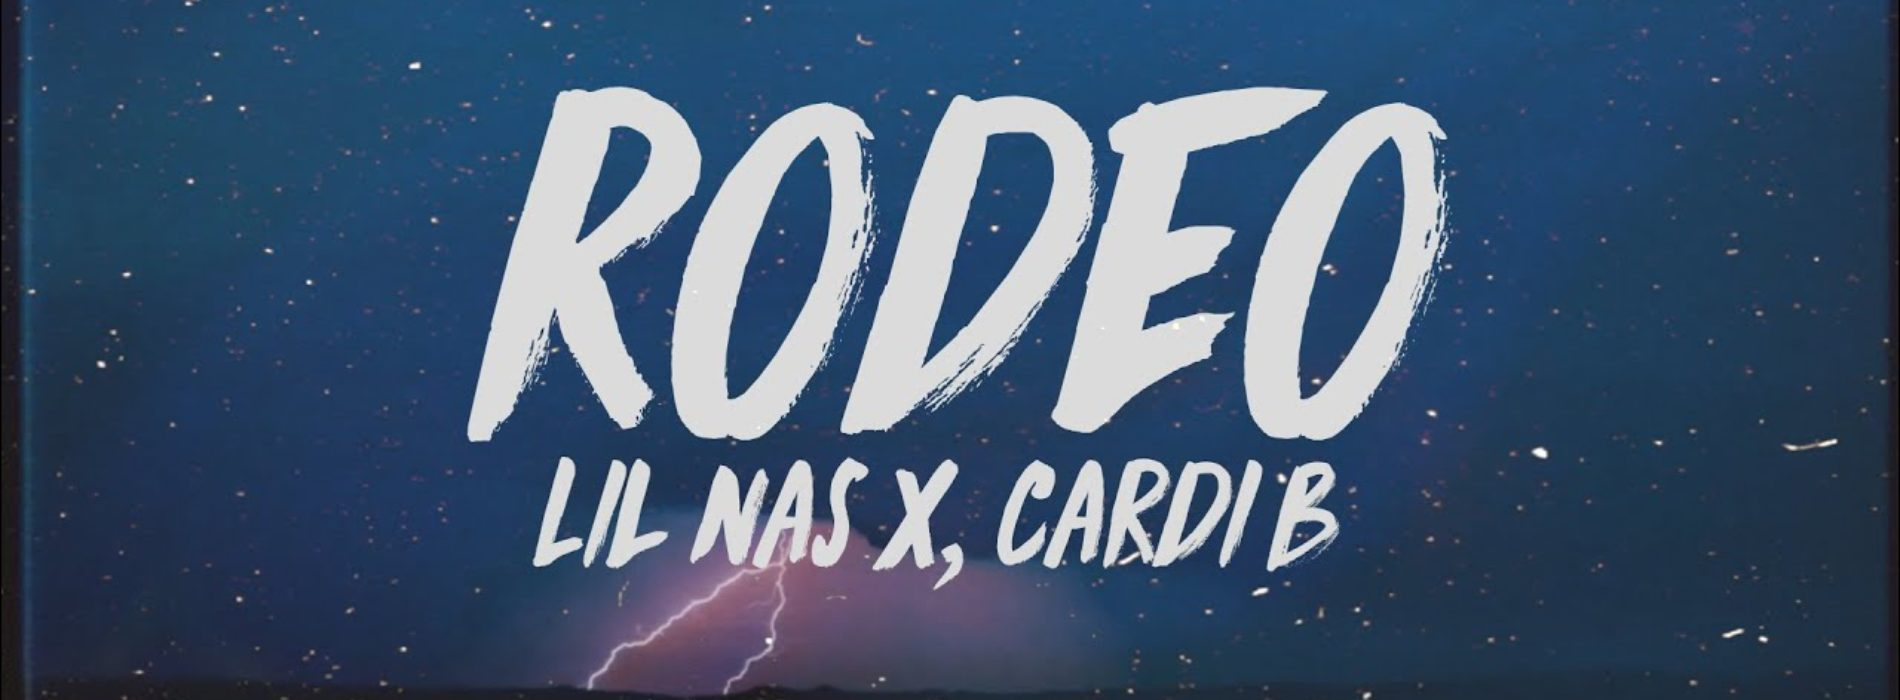 Lil Nas X, Cardi B – Rodeo (Official Audio) – Juin 2019